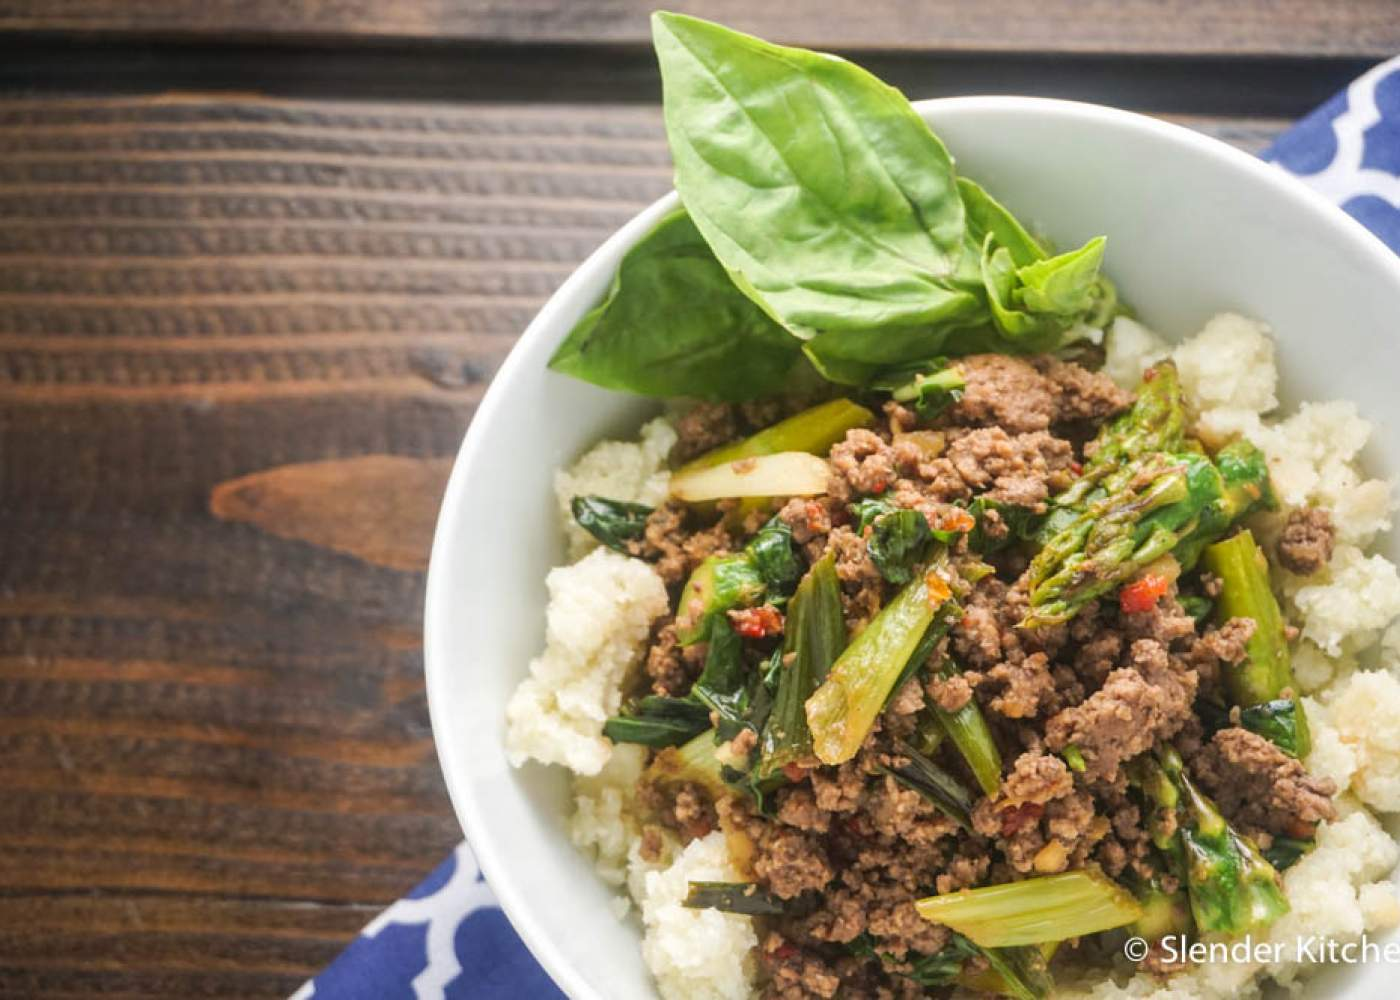 Thai Basil Ground Beef in a bowl with fresh basil and a wooden background.